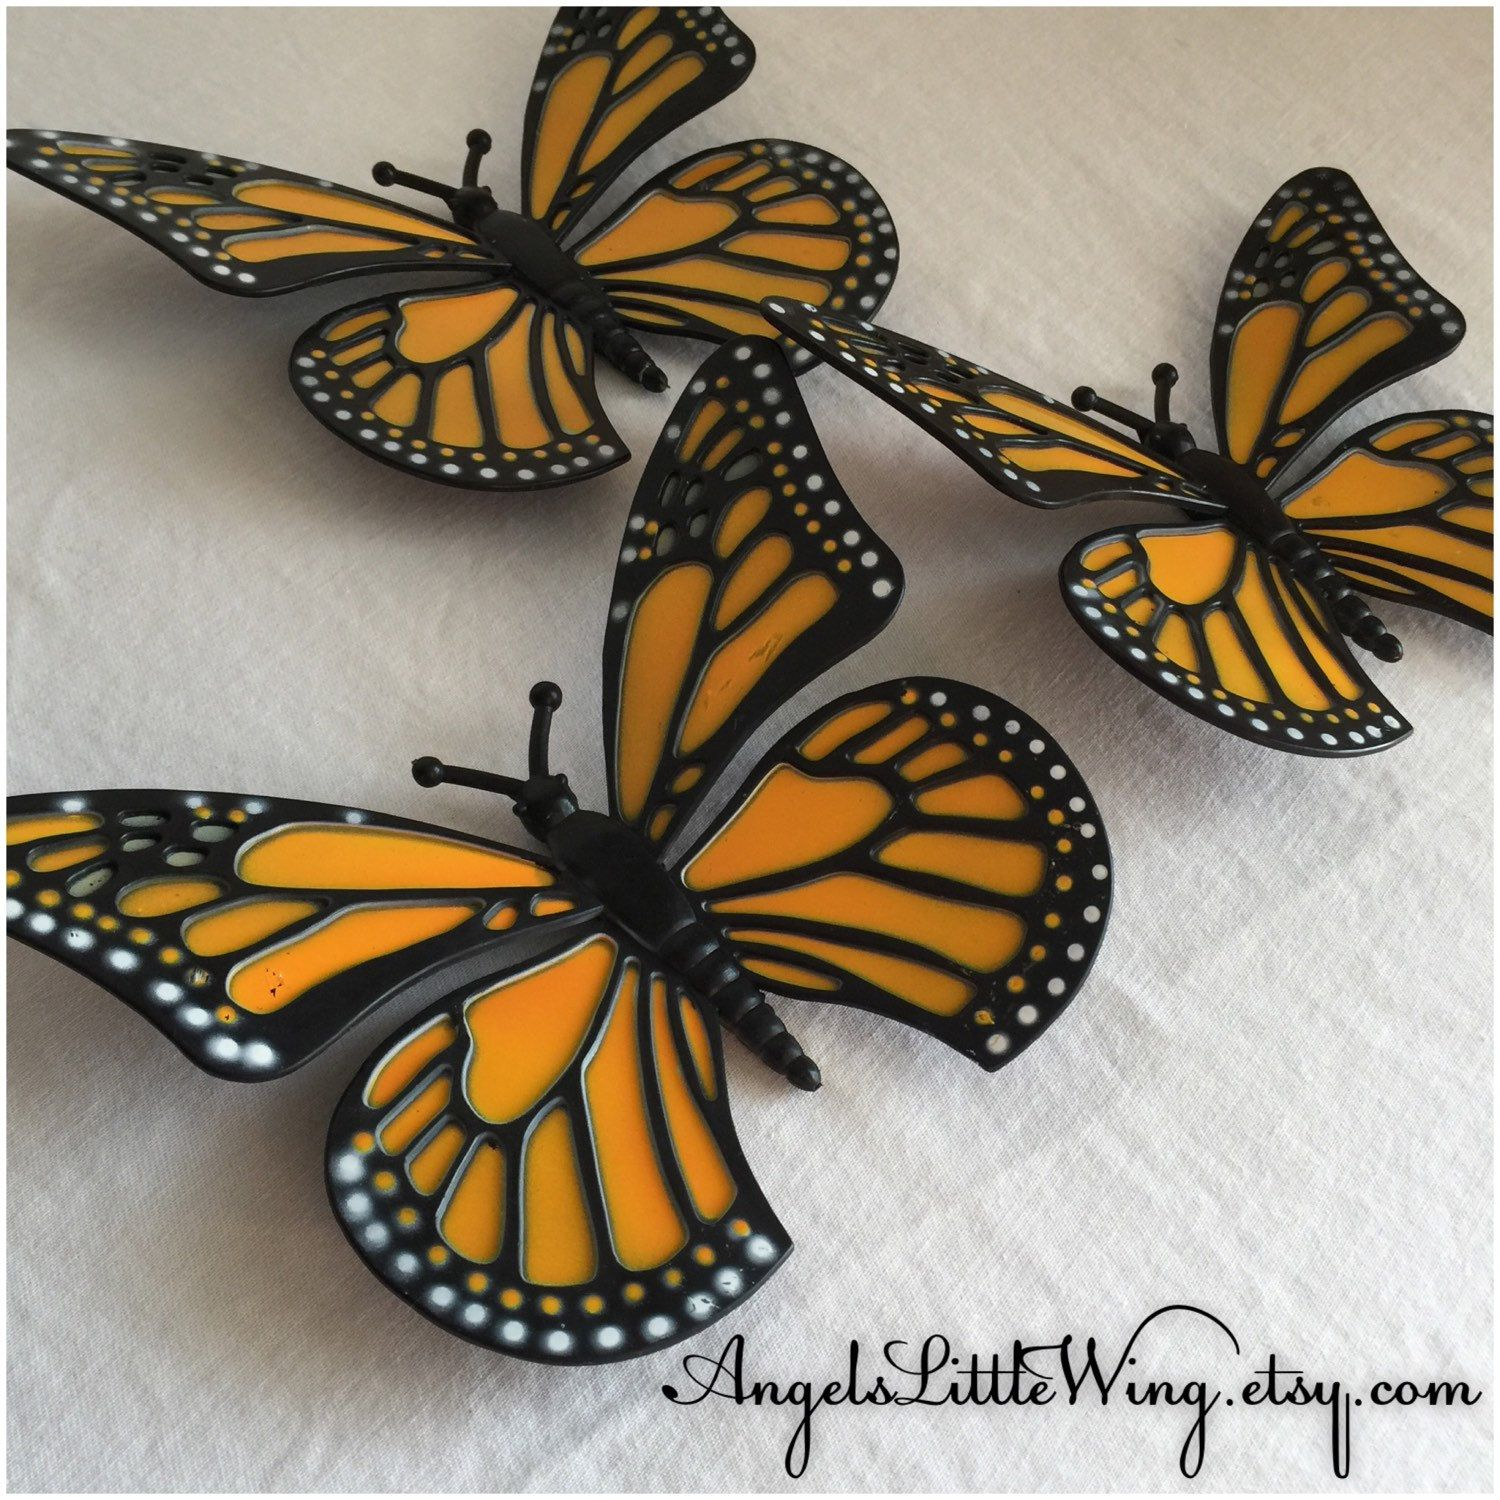 Set Of Three Rare Vintage 1989 Monarch Butterfly Wall Decor Etsy Butterfly Wall Decor Butterfly Wall 3d Butterfly Wall Art